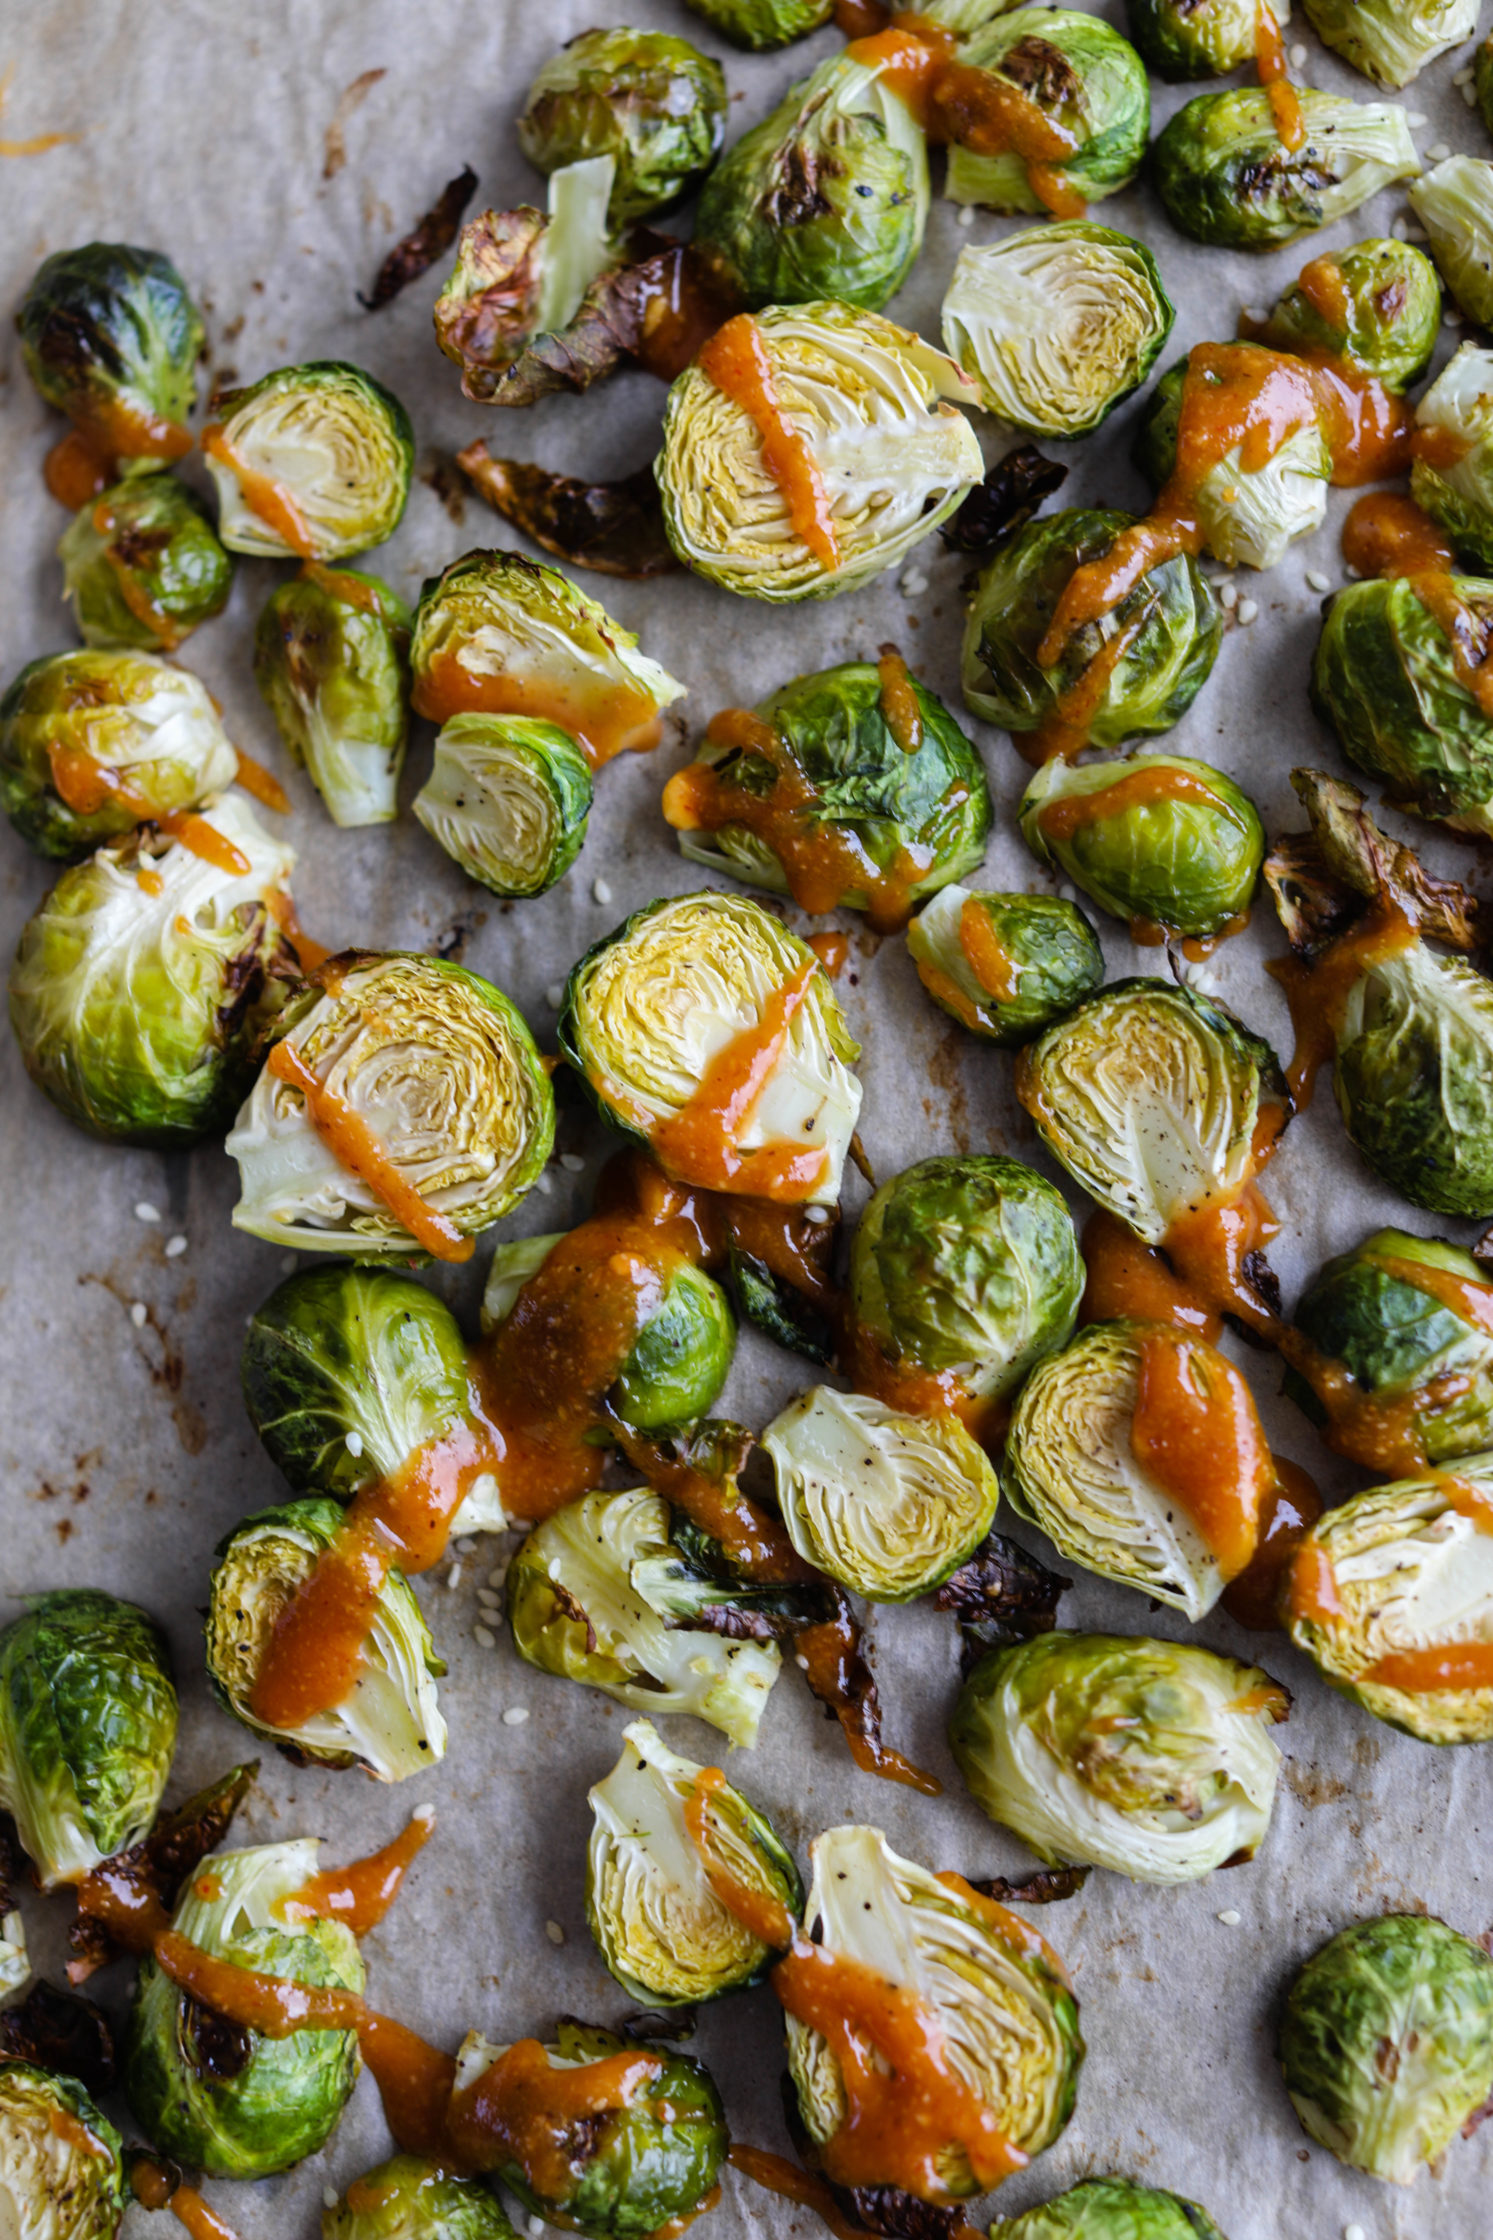 Roasted Brussels Sprouts with Spicy Hazelnut Butter Sauce by Flora & Vino